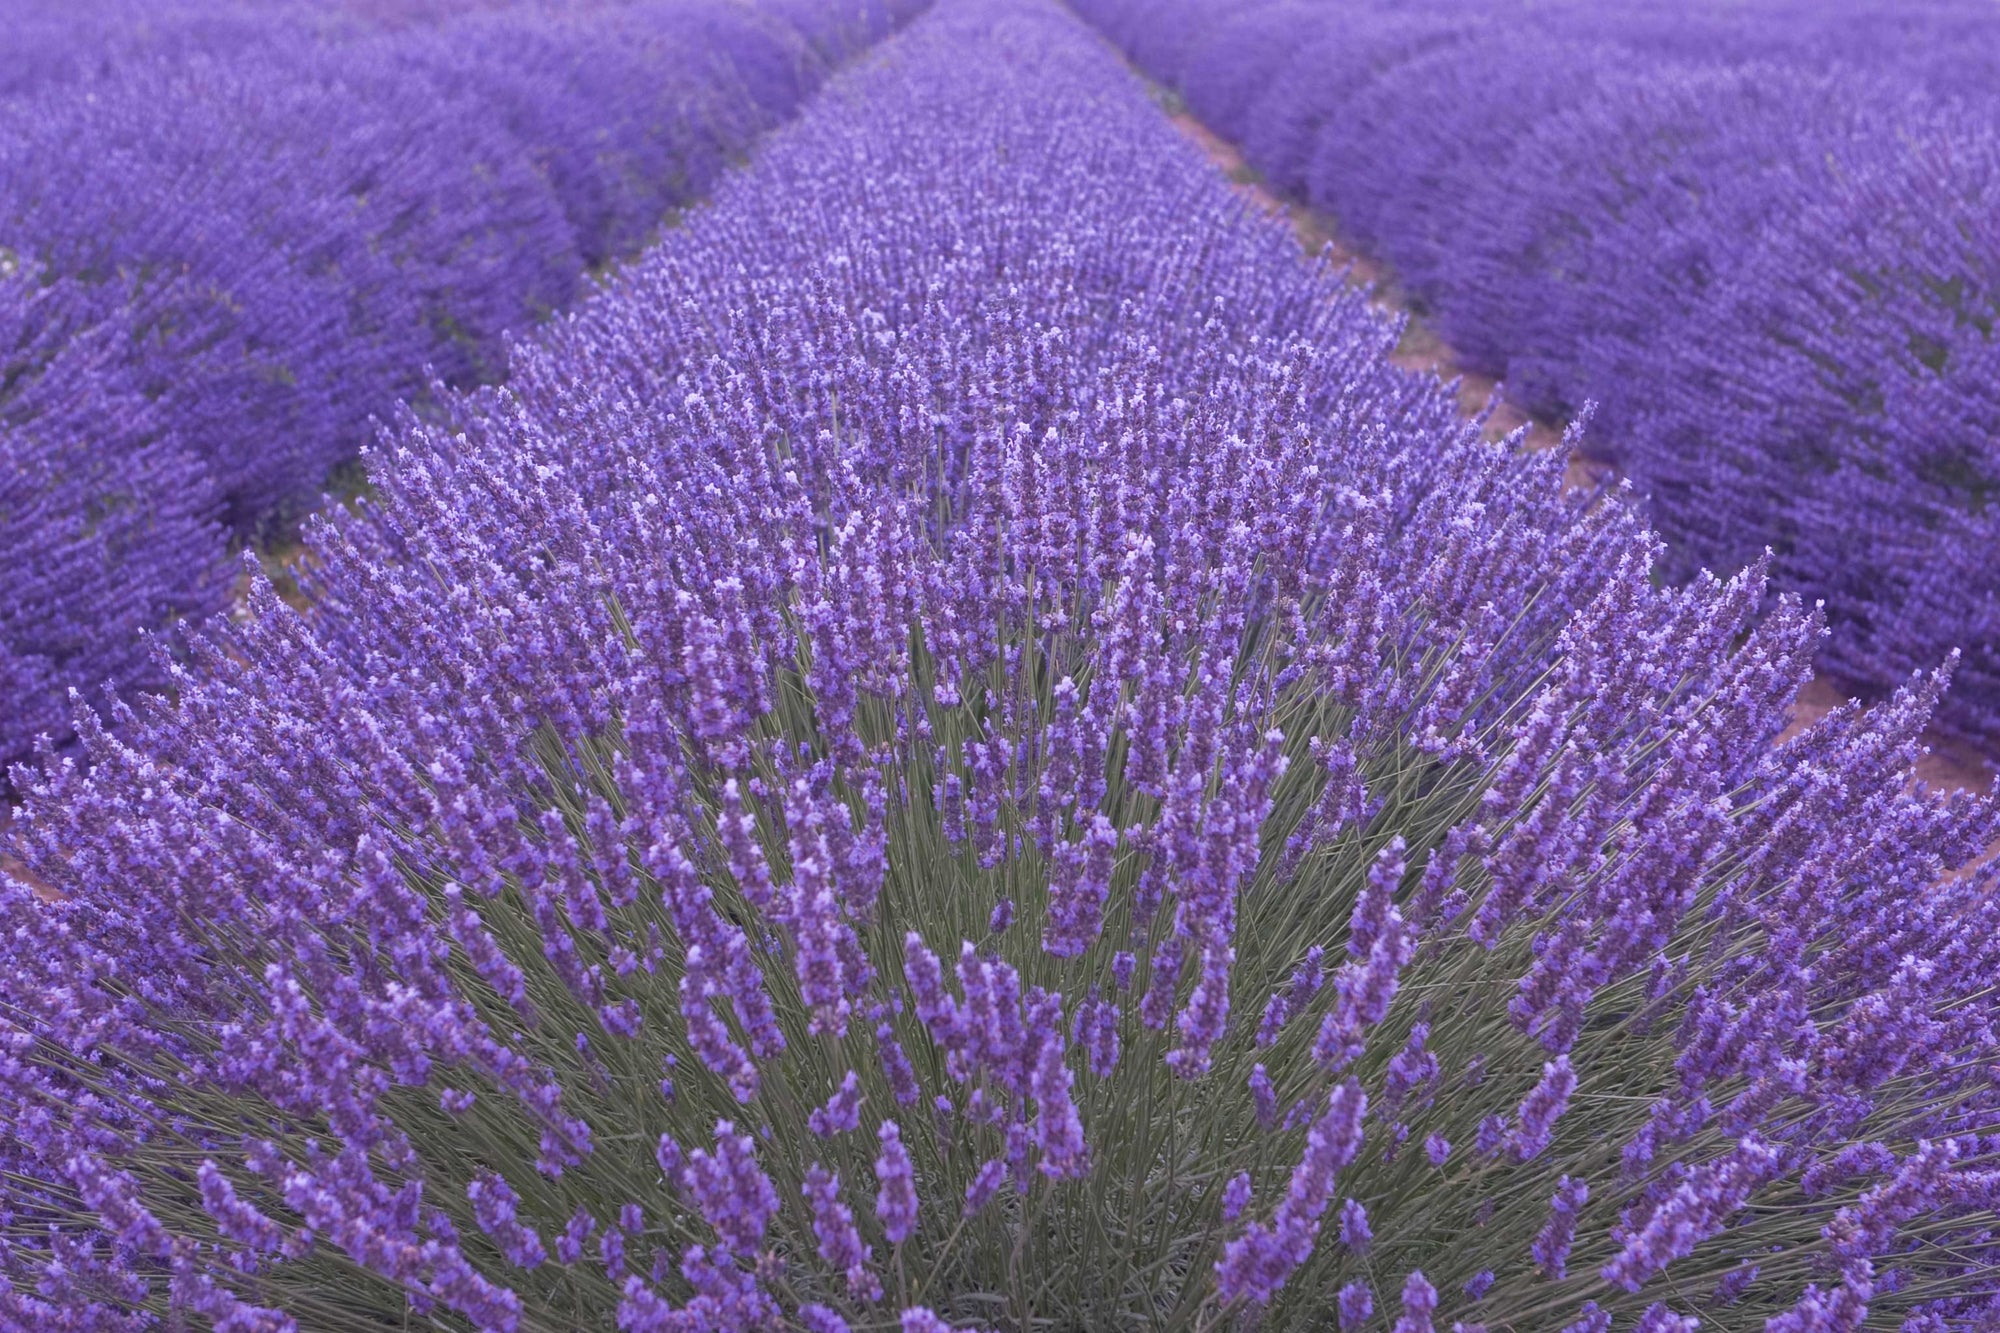 close up of lavender blossoms in field